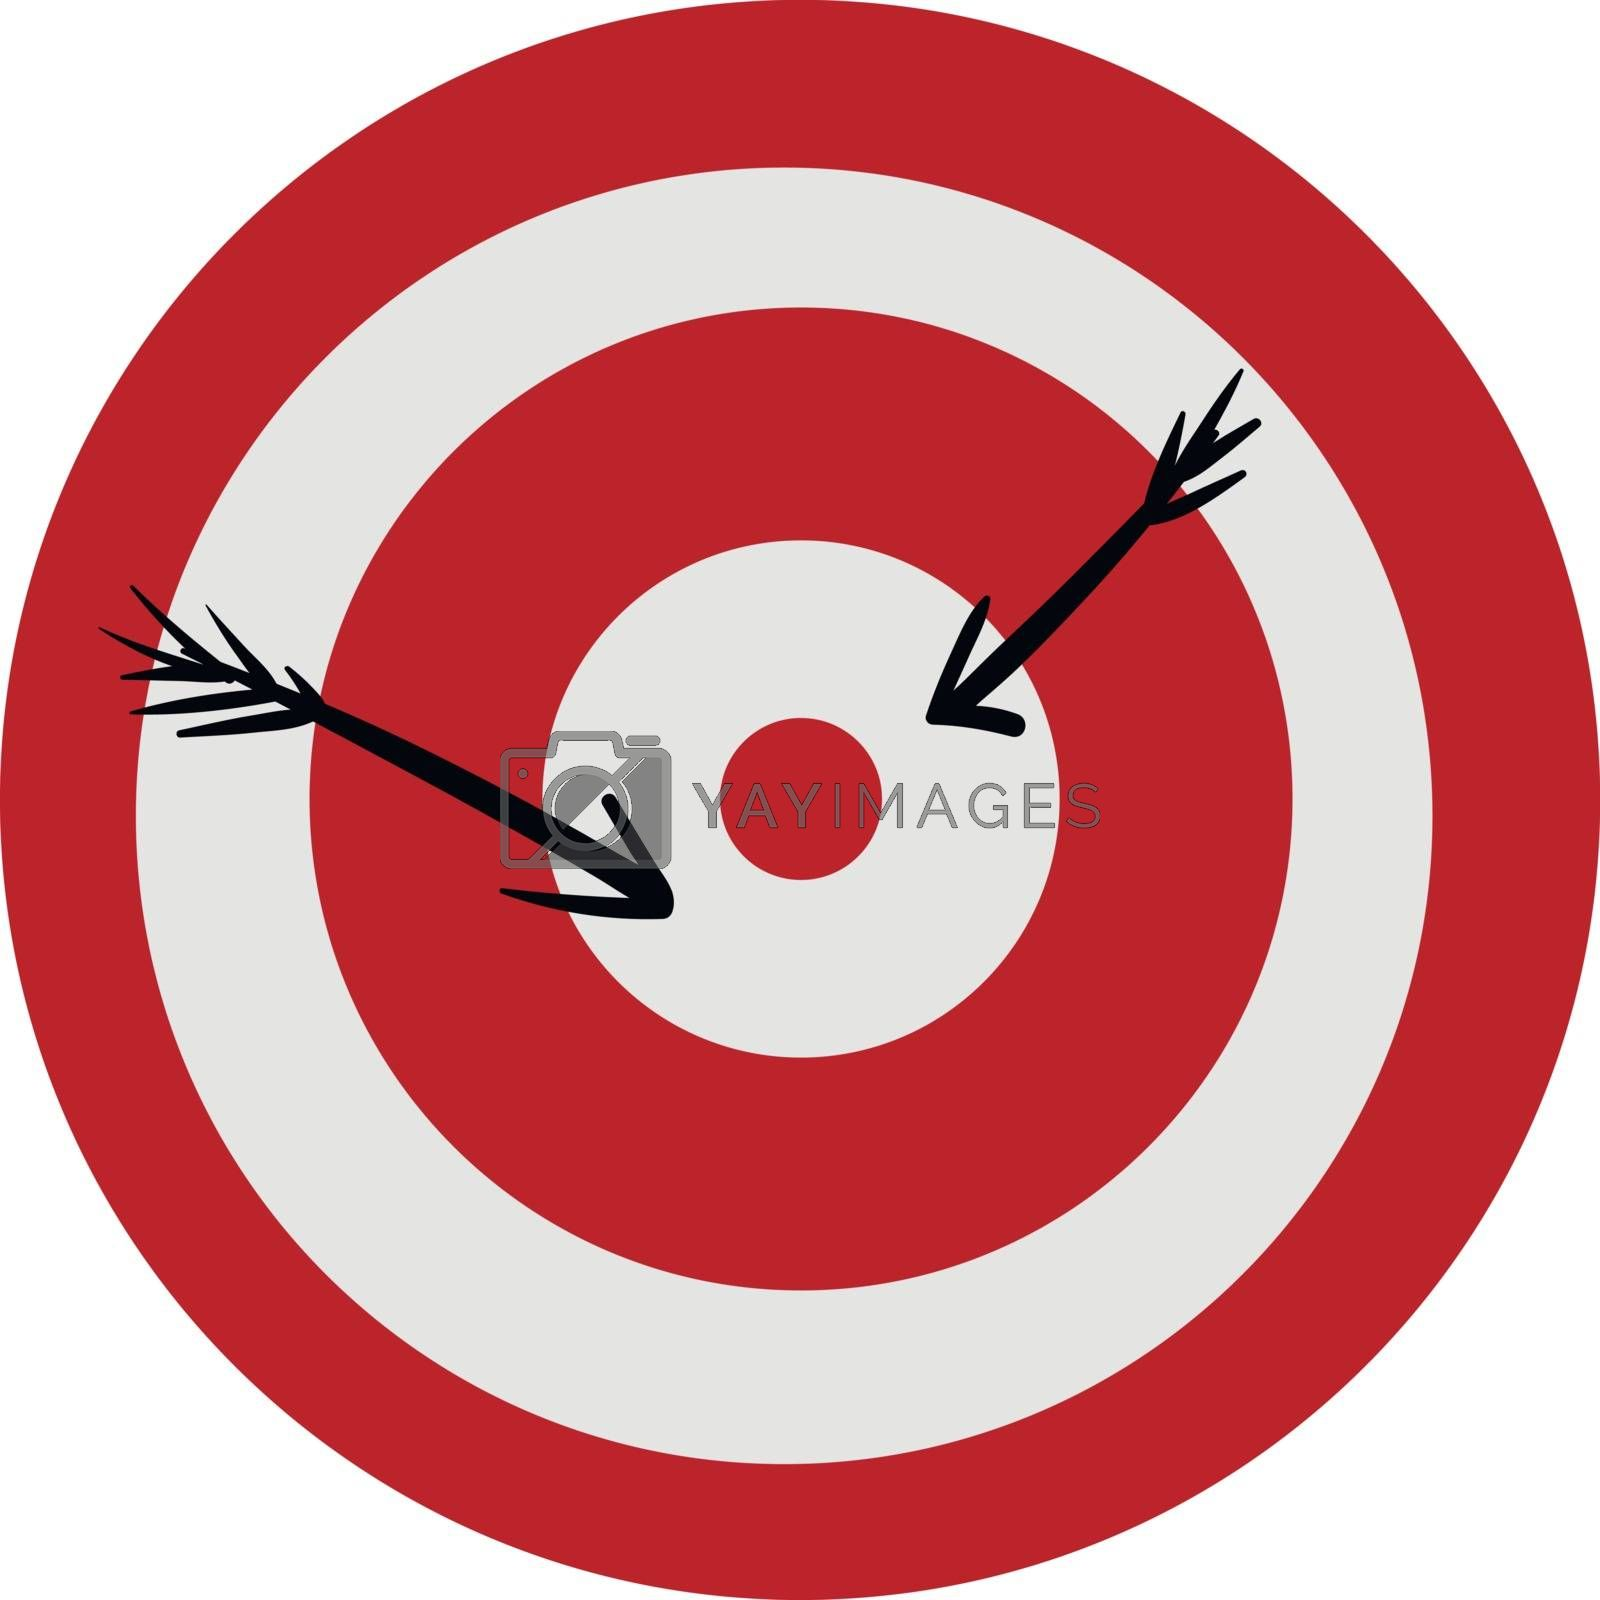 Royalty free image of Clipart of a red-colored bullseye vector or color illustration by Morphart